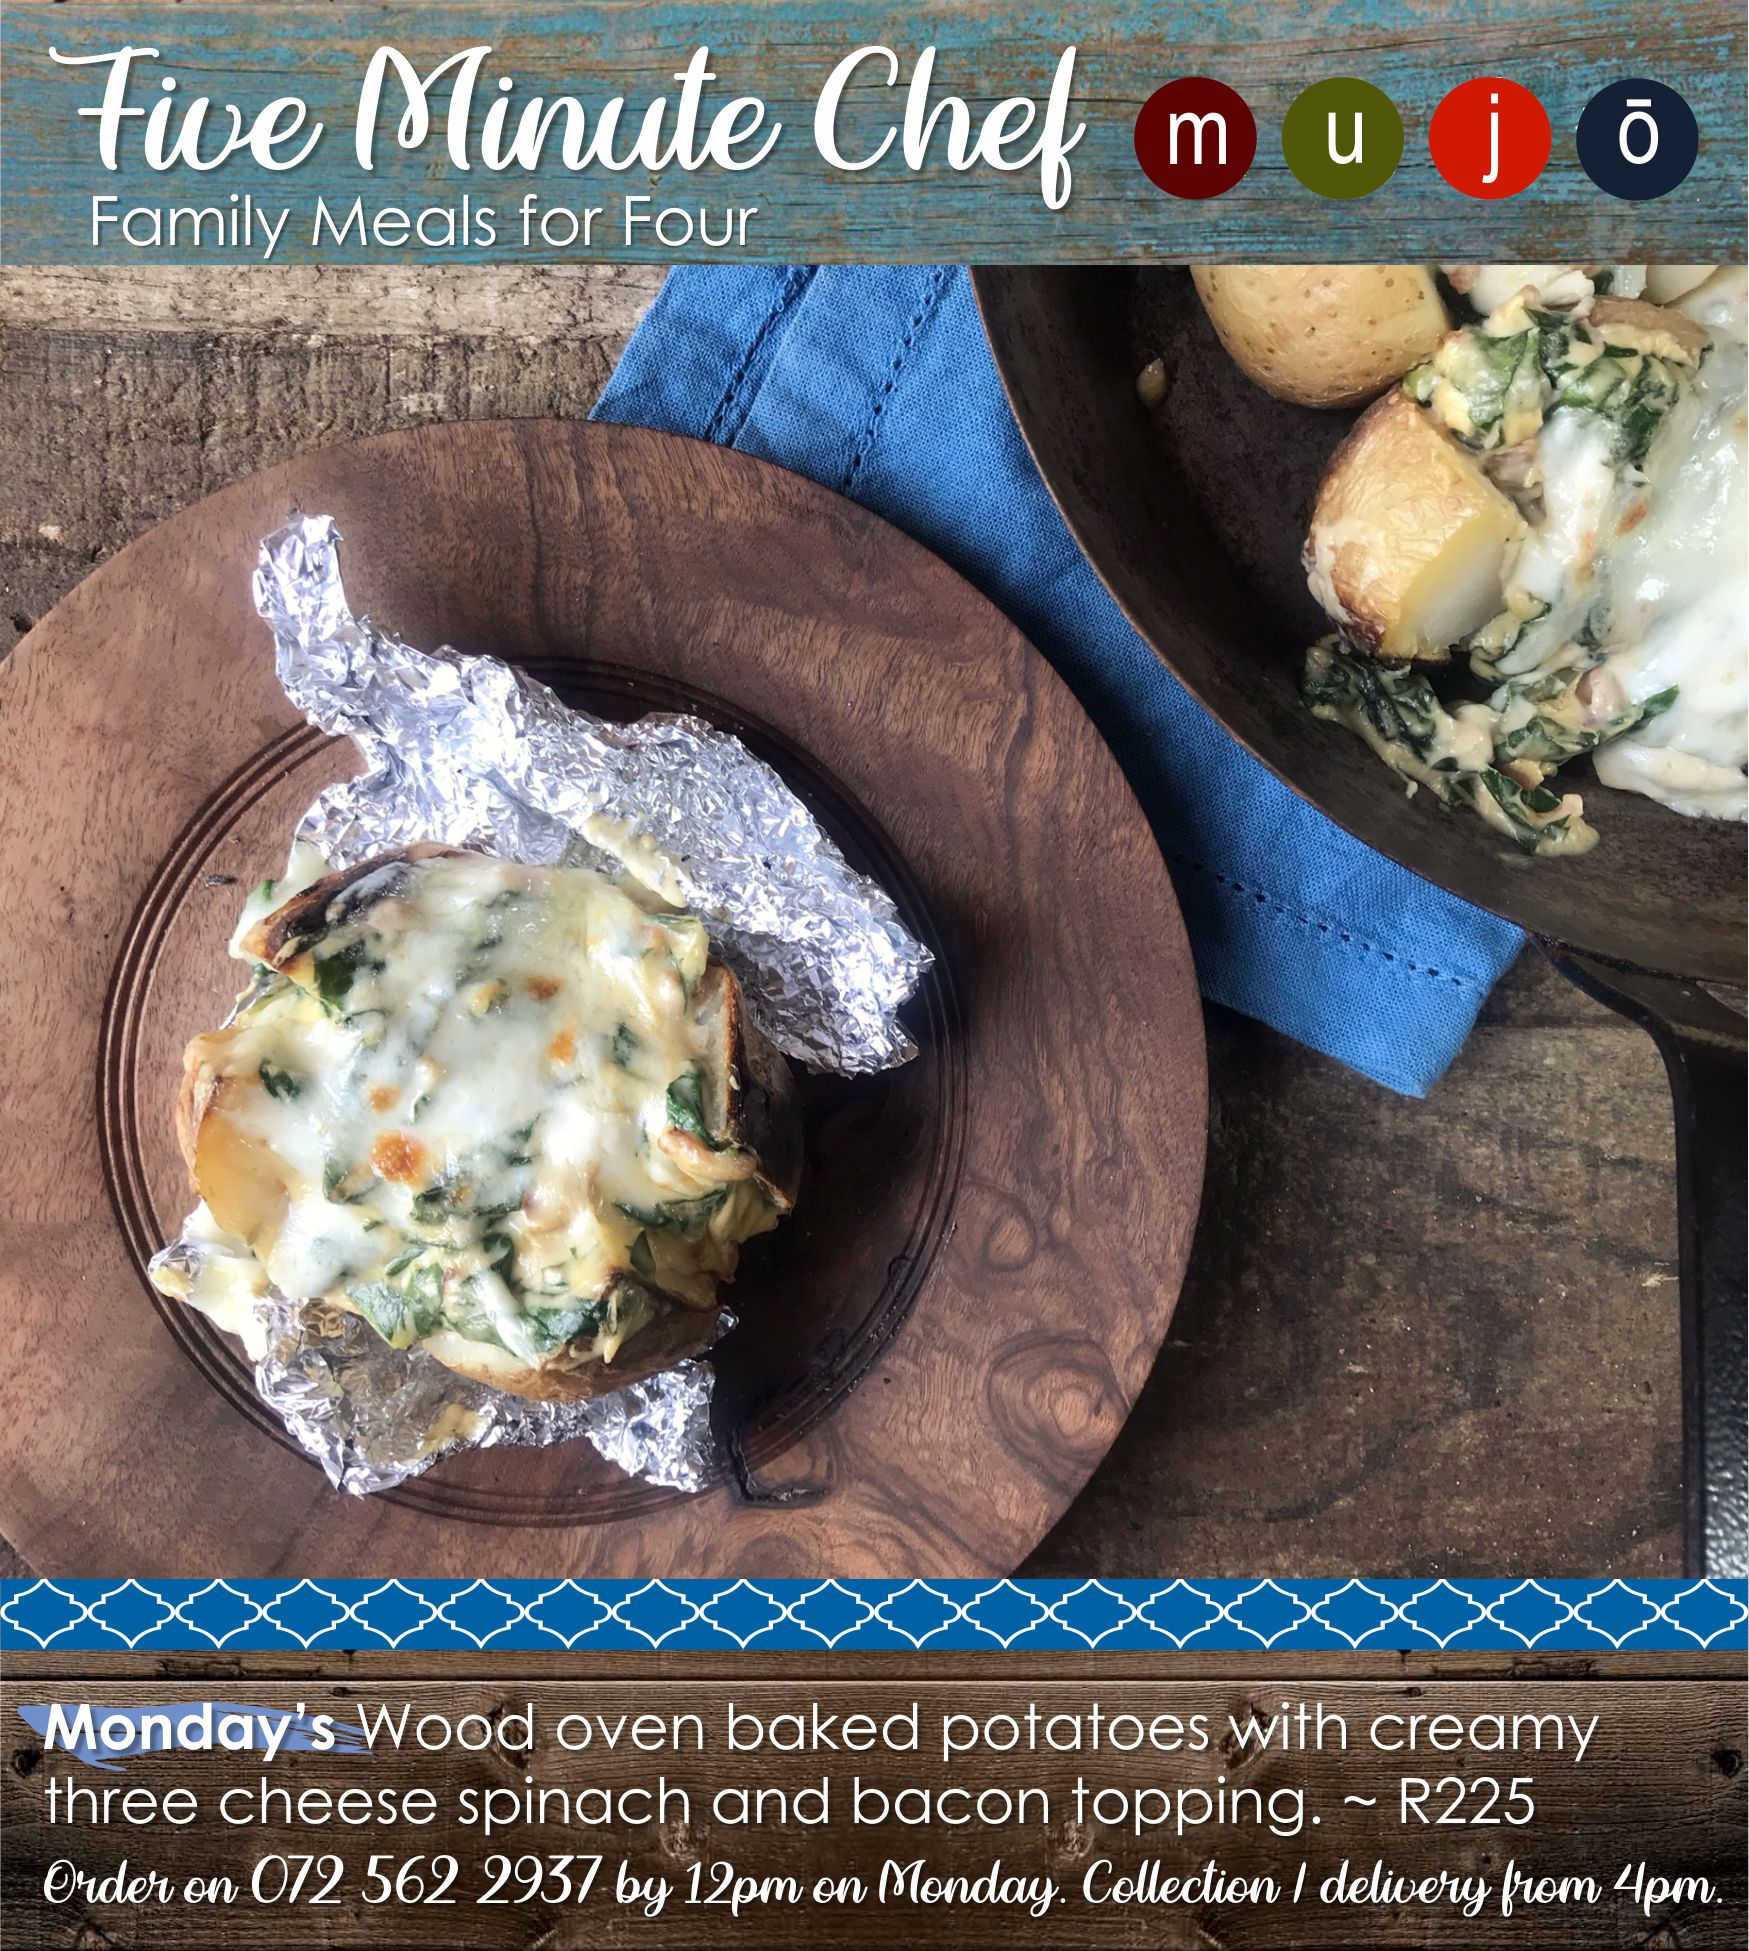 Five Minute Chef spinach spuds